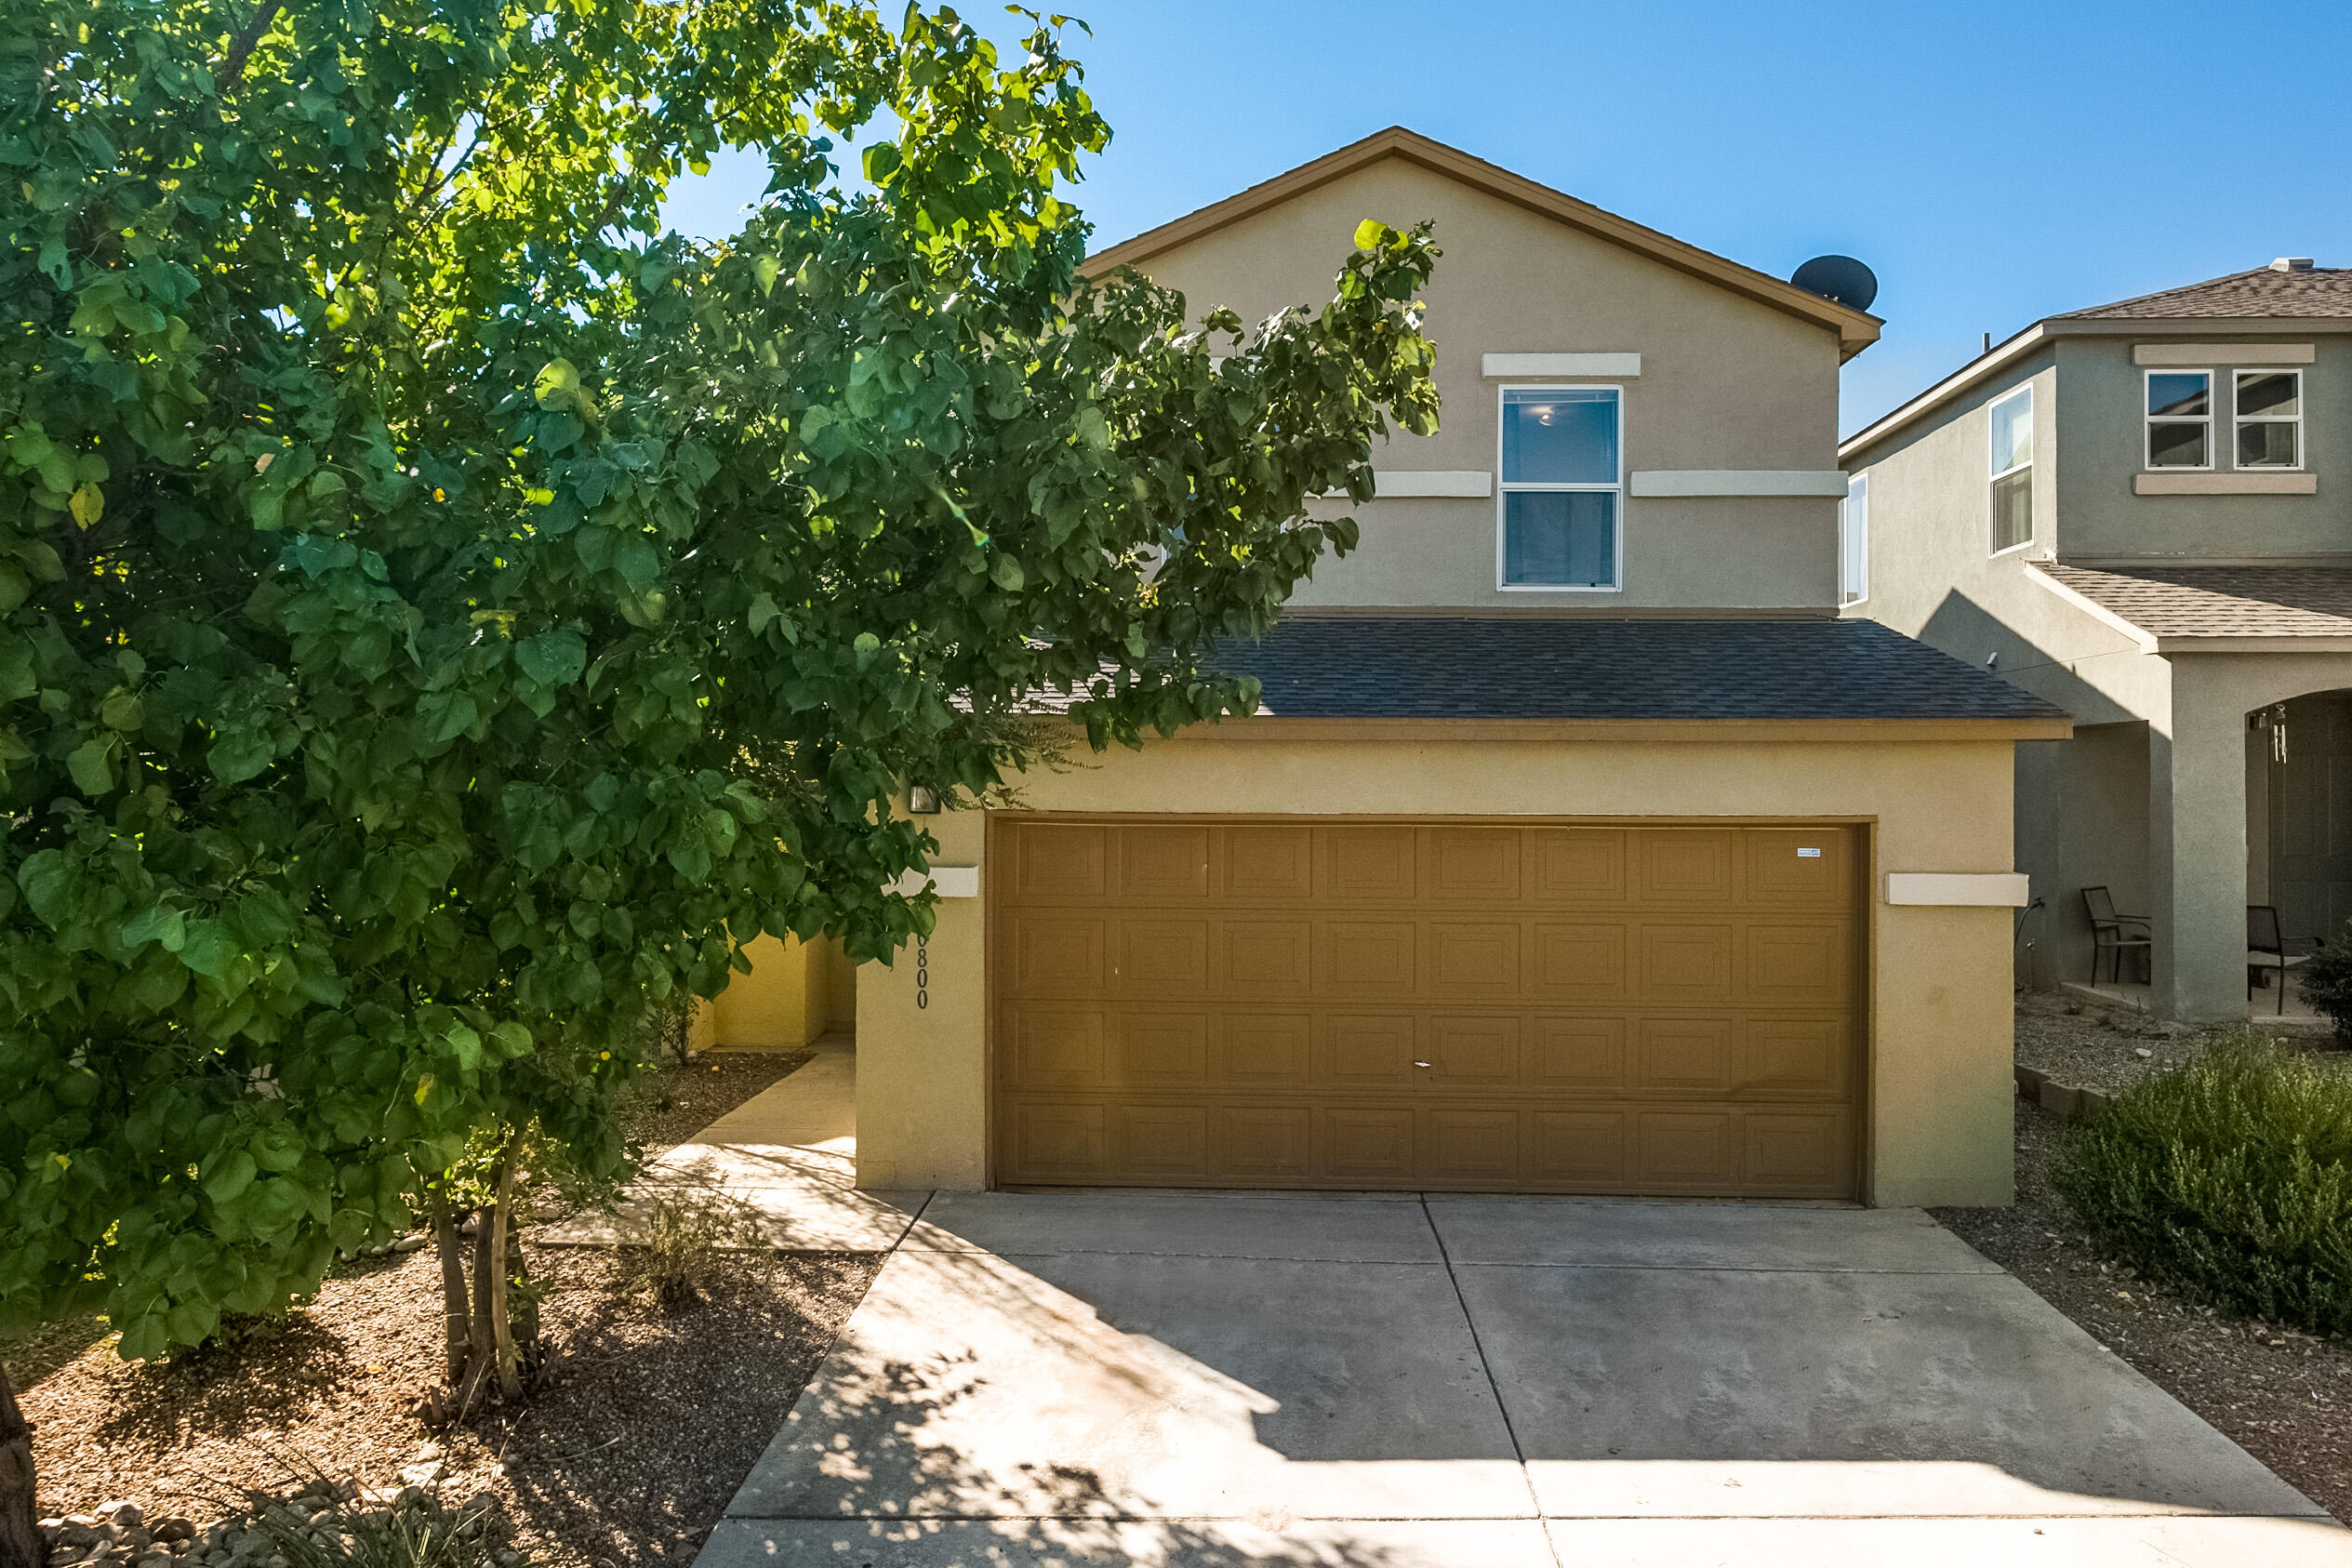 Welcome Home! This beautiful home in a gated Community has an open floor plan, fresh paint throughout, refrigerated air. Enjoy the community swimming pool.